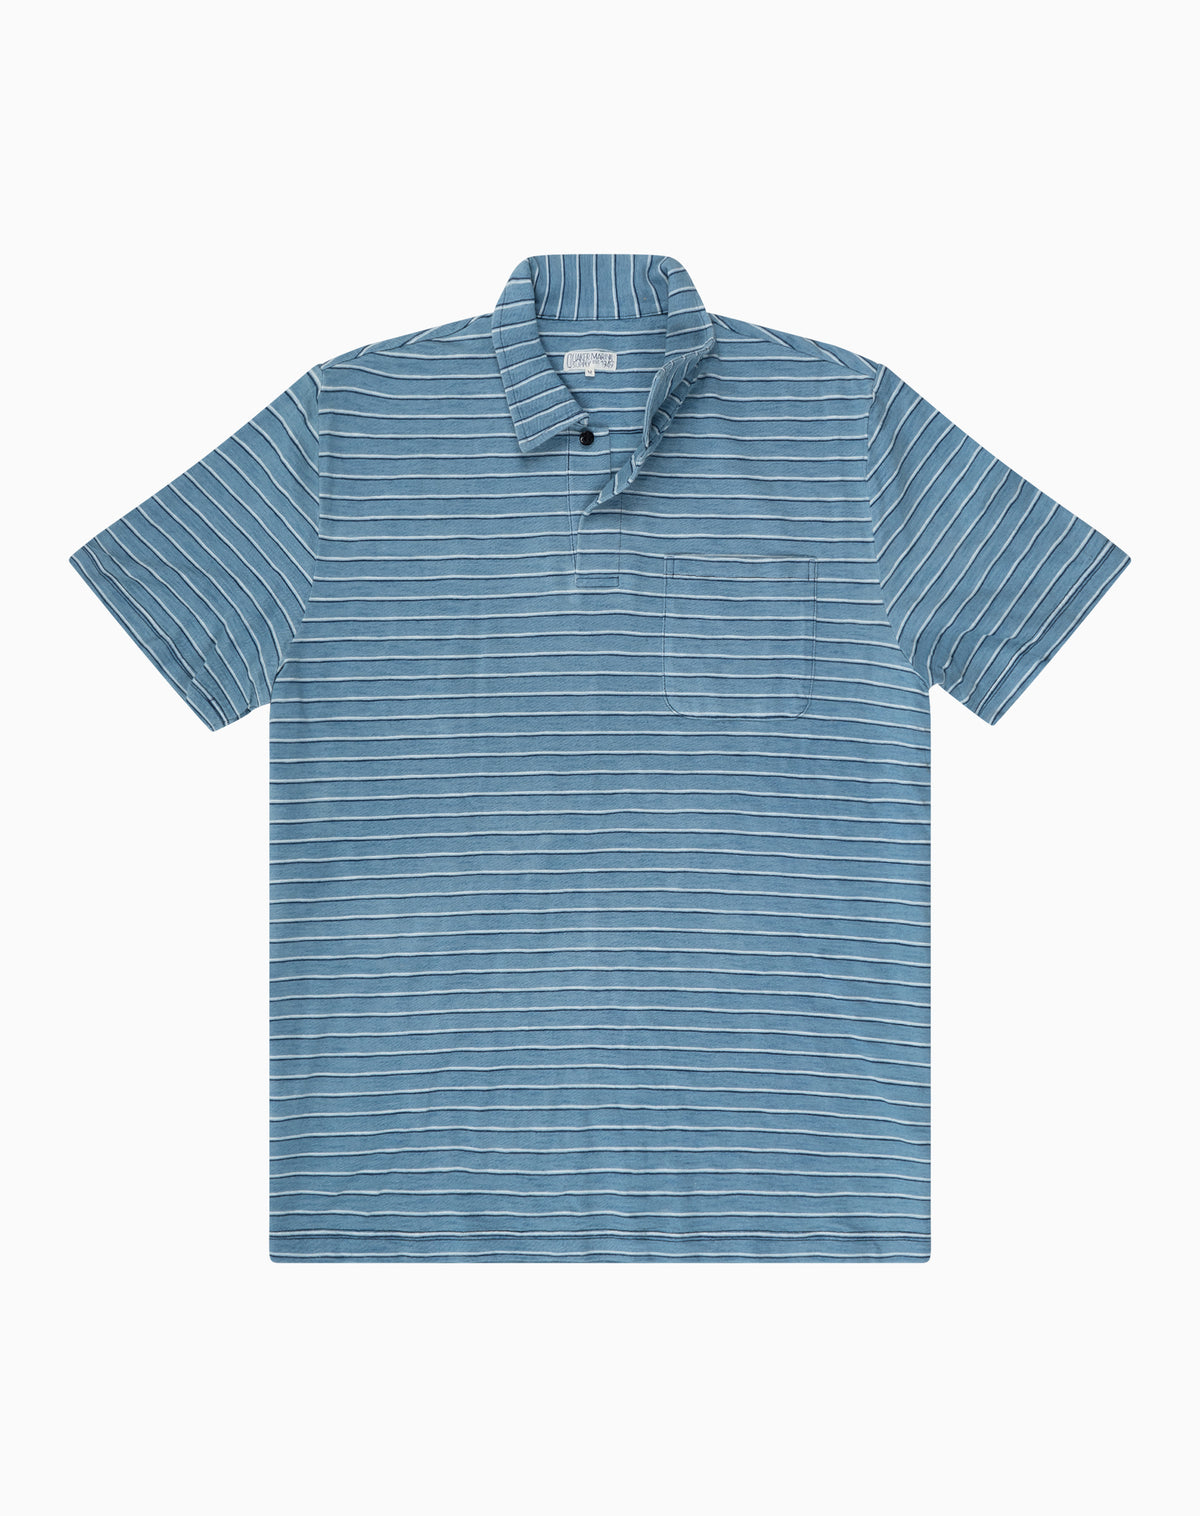 Indigo Stripe Polo in Light Wash